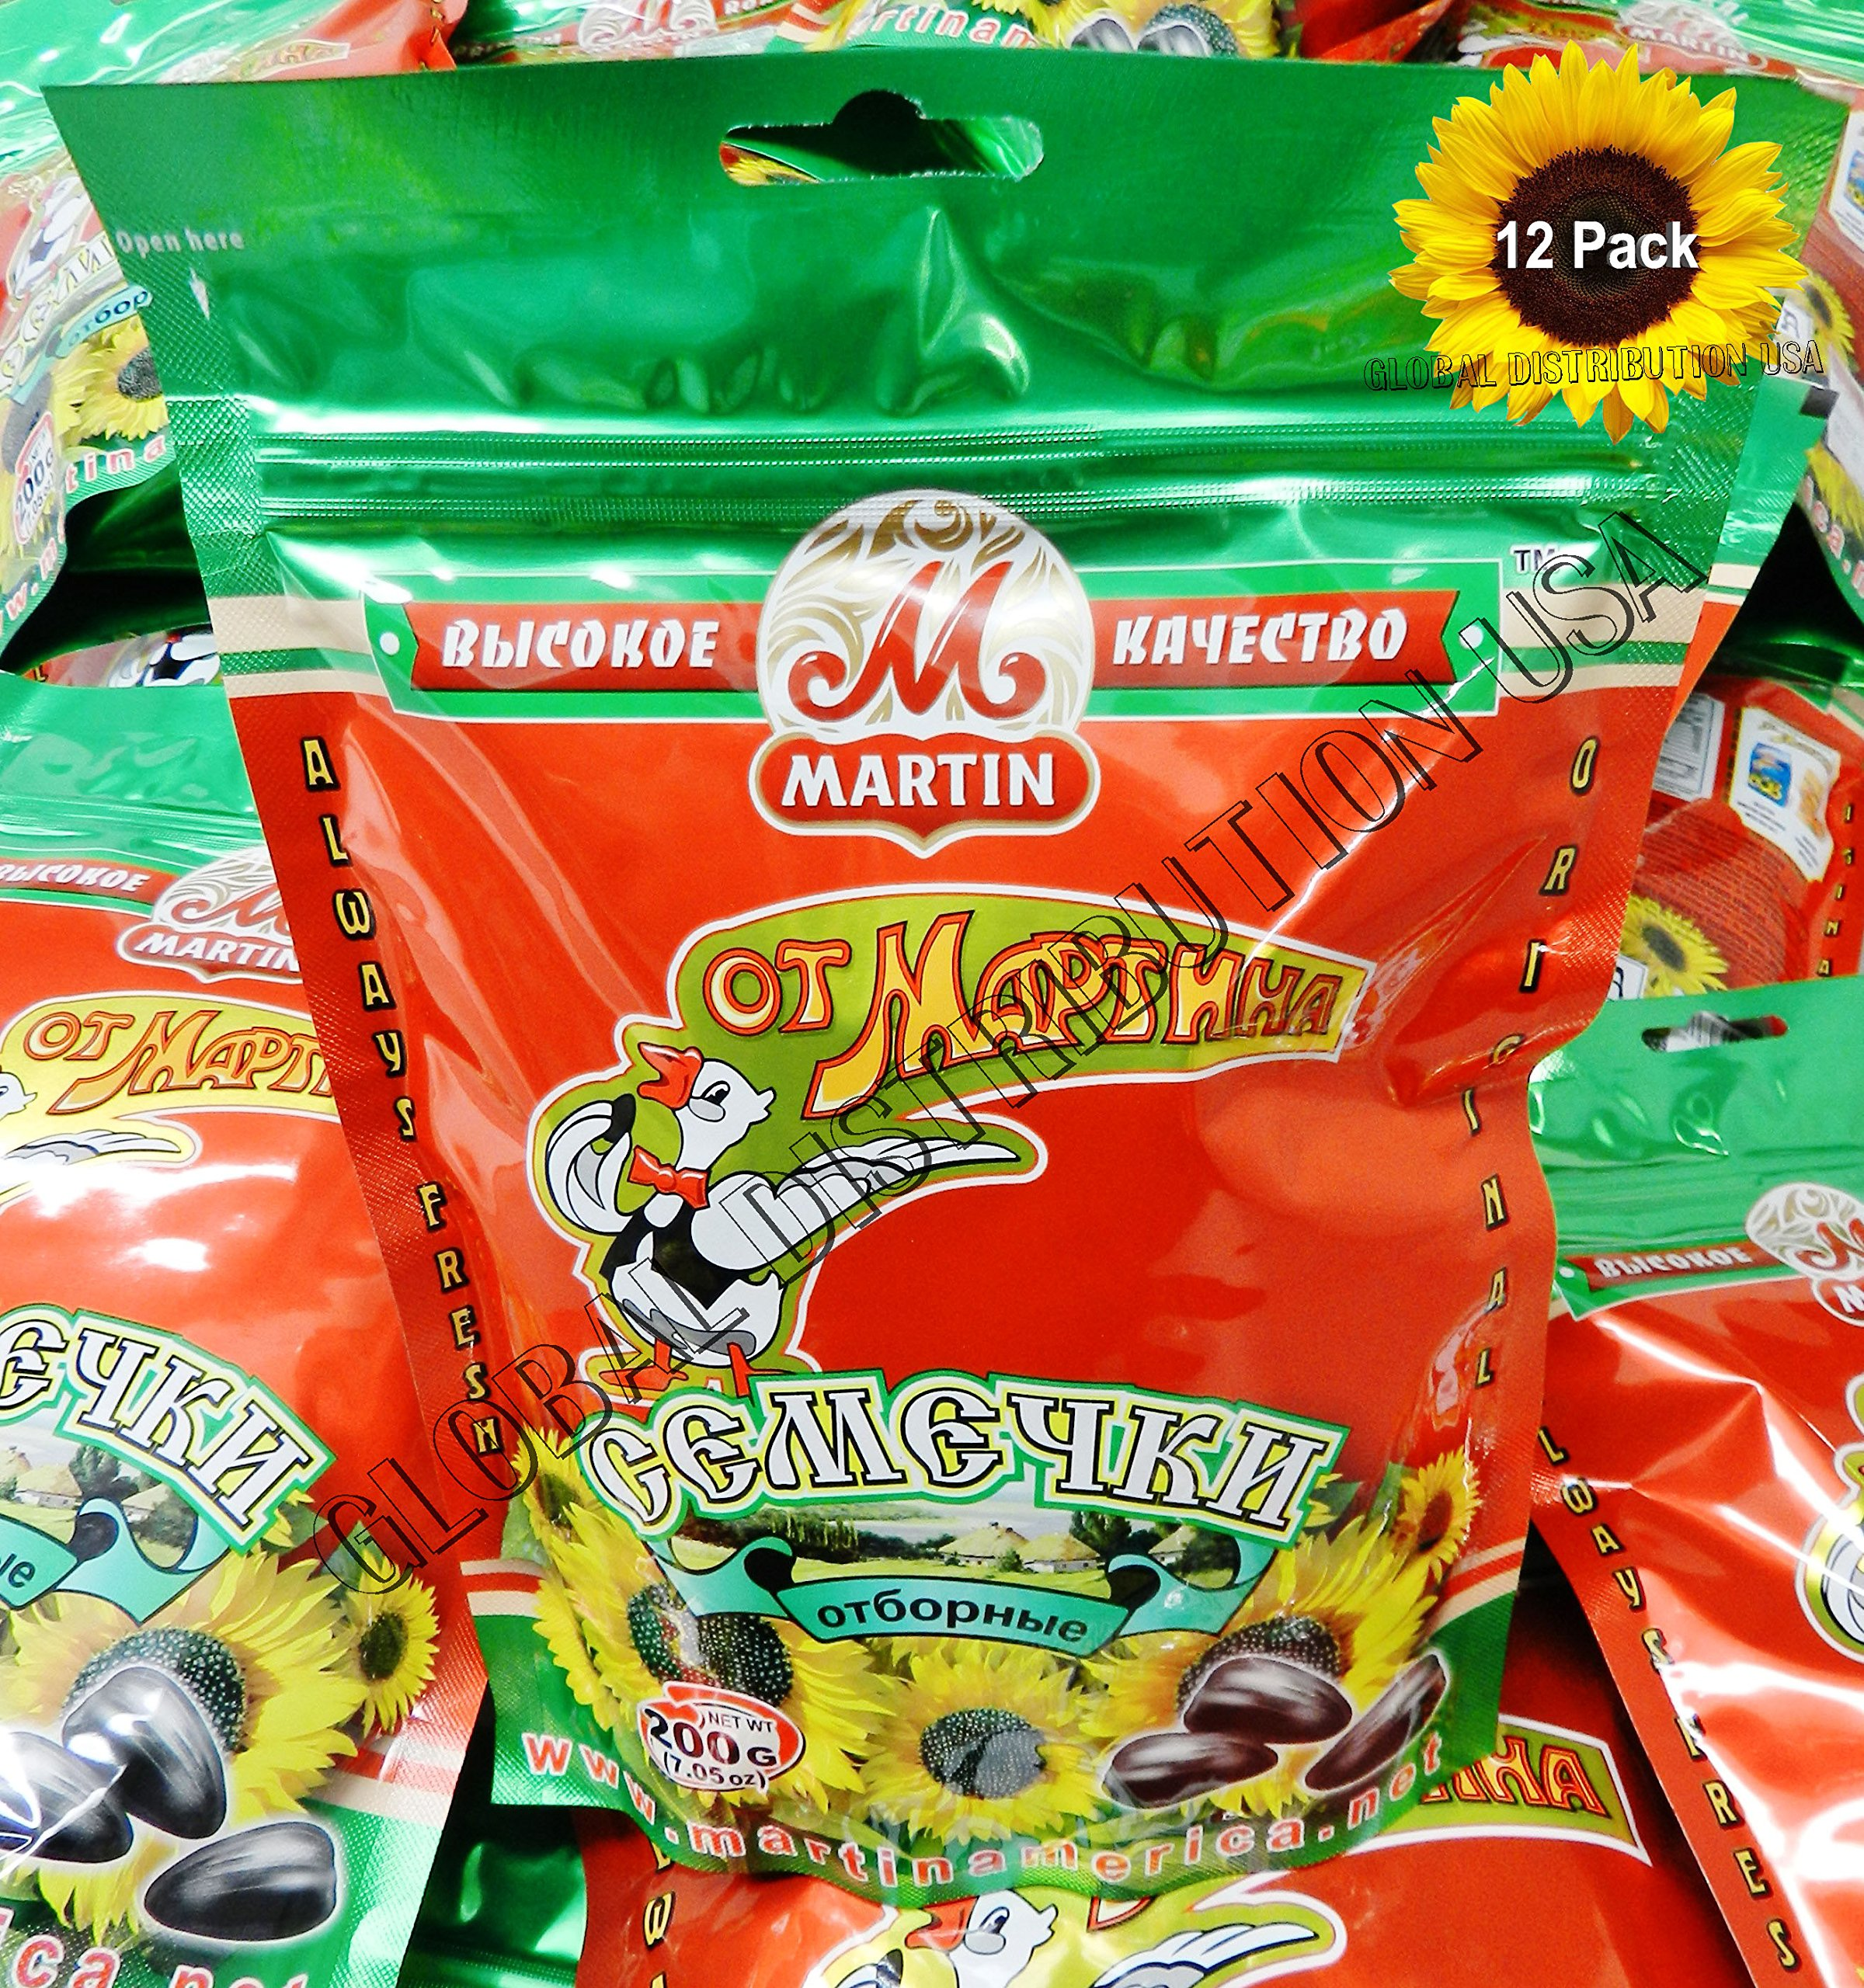 Premium Roasted Sunflower Seeds by Mr.Martin (Ot Martina) Unsalted Non-GMO 200G Pack of 12